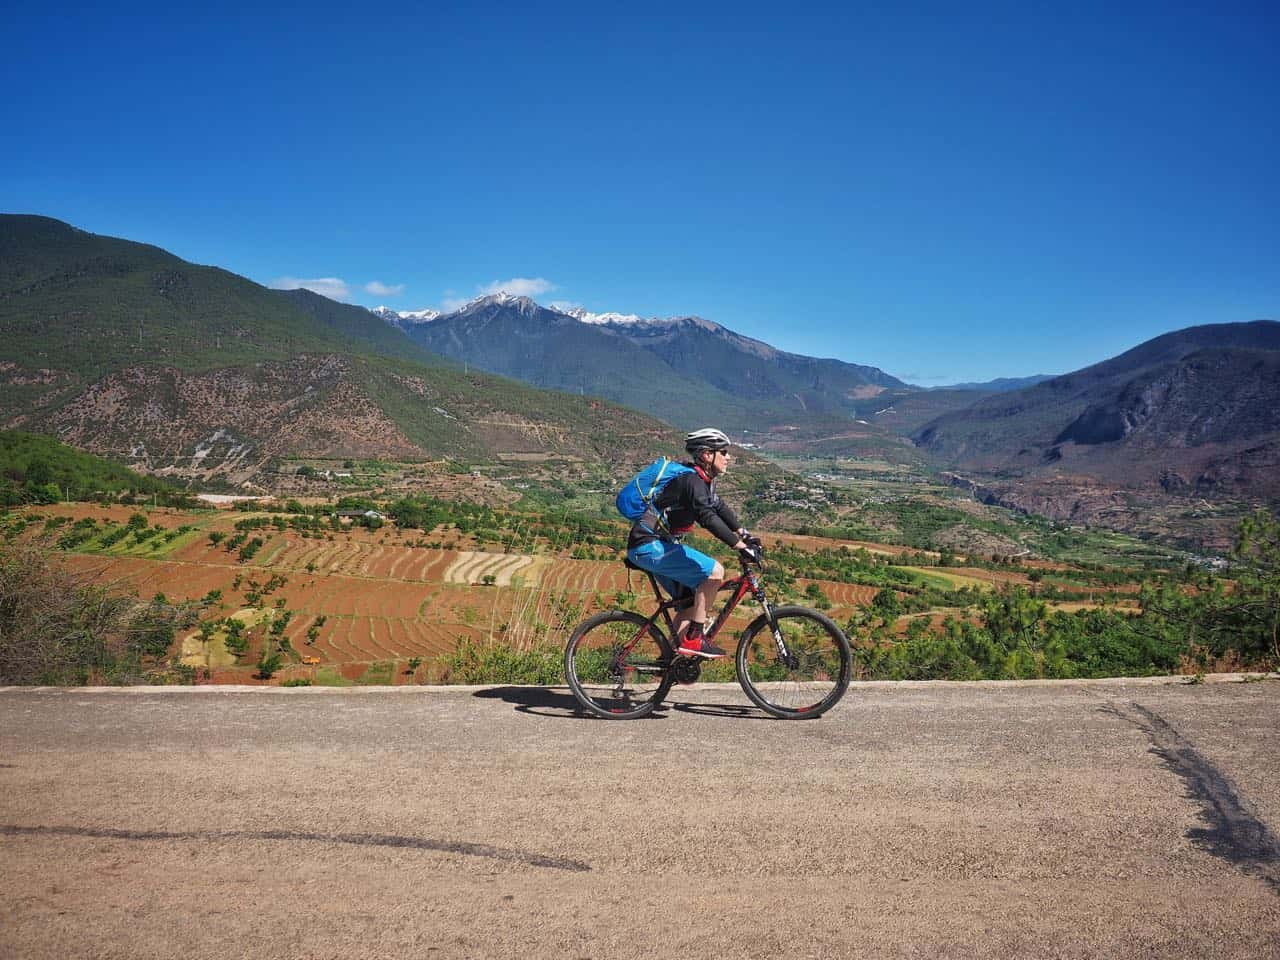 Yunnan Province 2018 In Pictures cycling holidays banner image